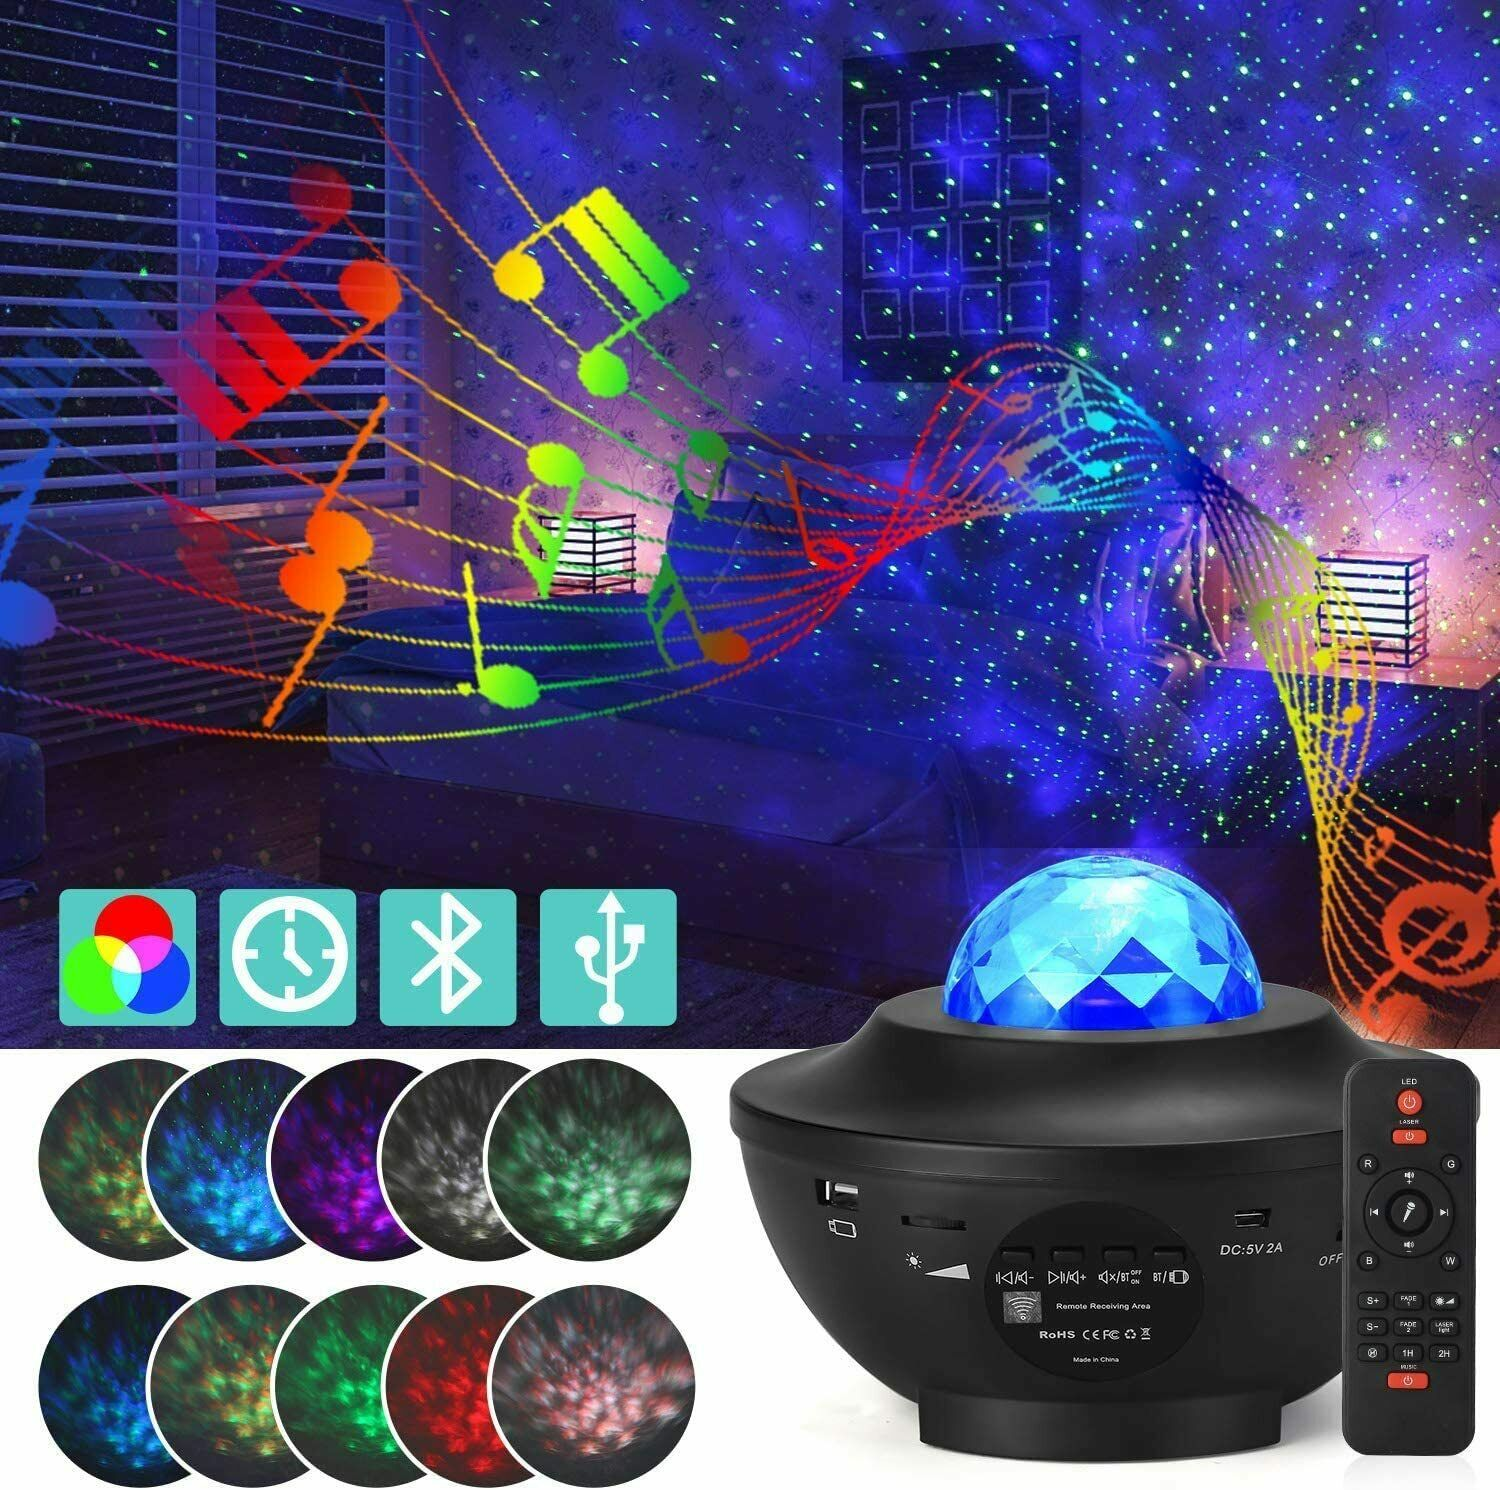 Kids Rotating Projector Starry Night Lamp Star Sky Projection Led Bedroom Decor For Sale Online Ebay